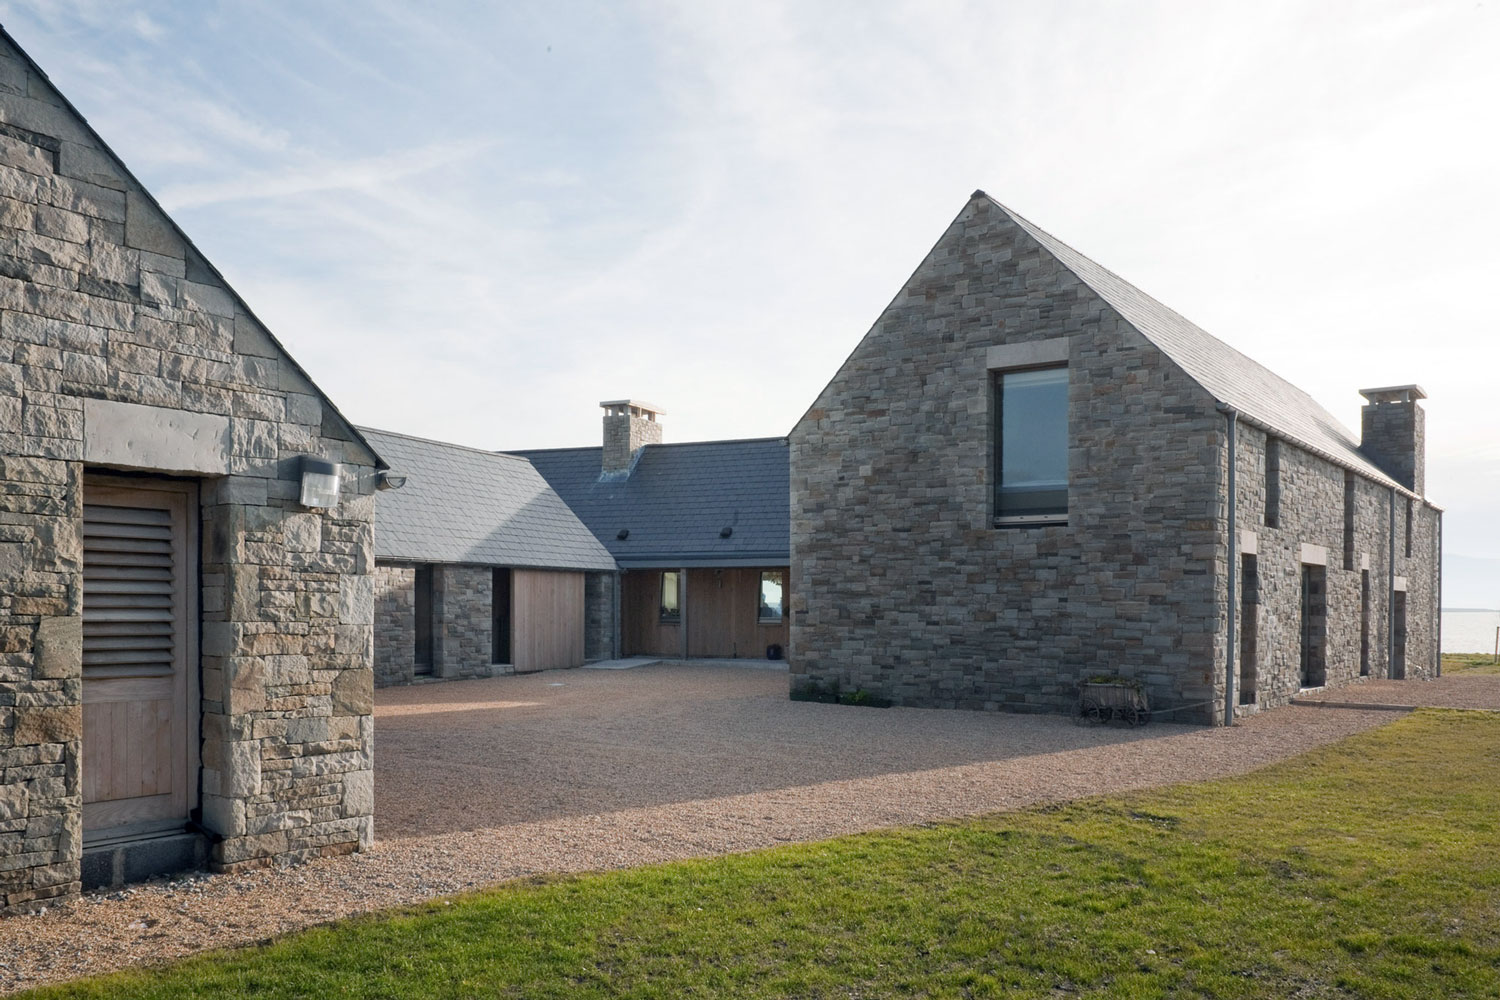 House in Blacksod Bay by Tierney Haines (4)